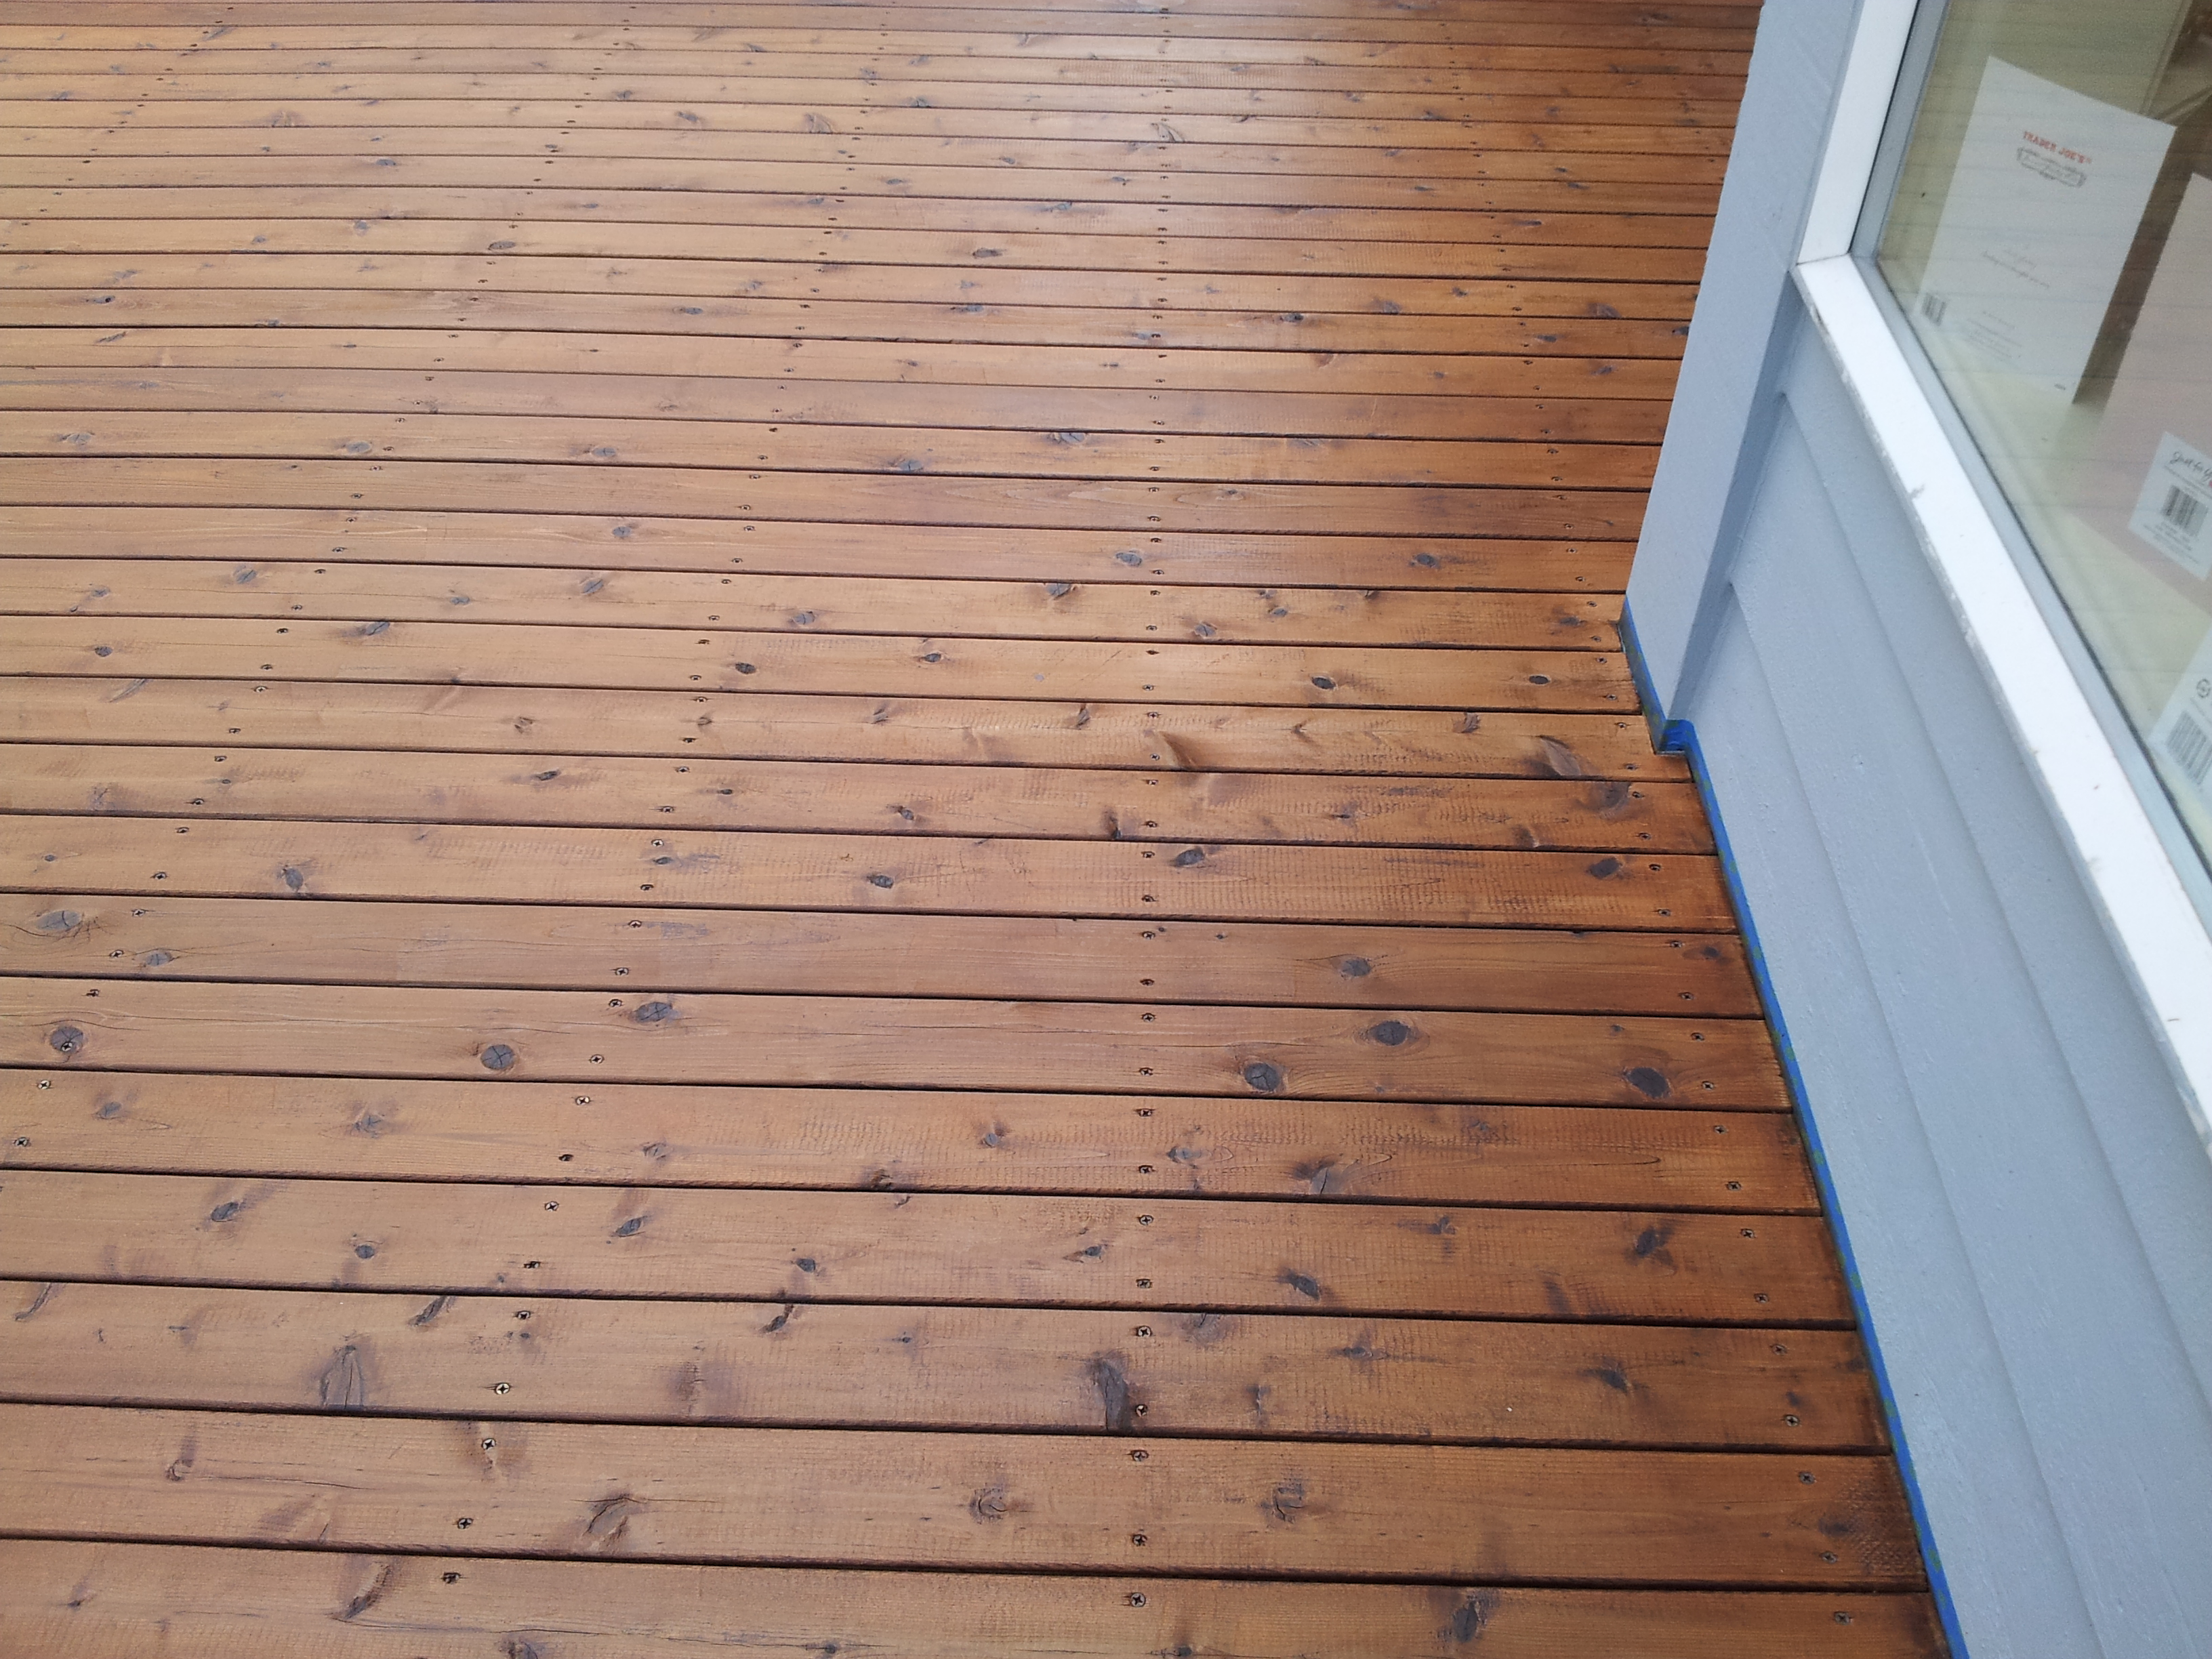 Oil Based Deck Stains